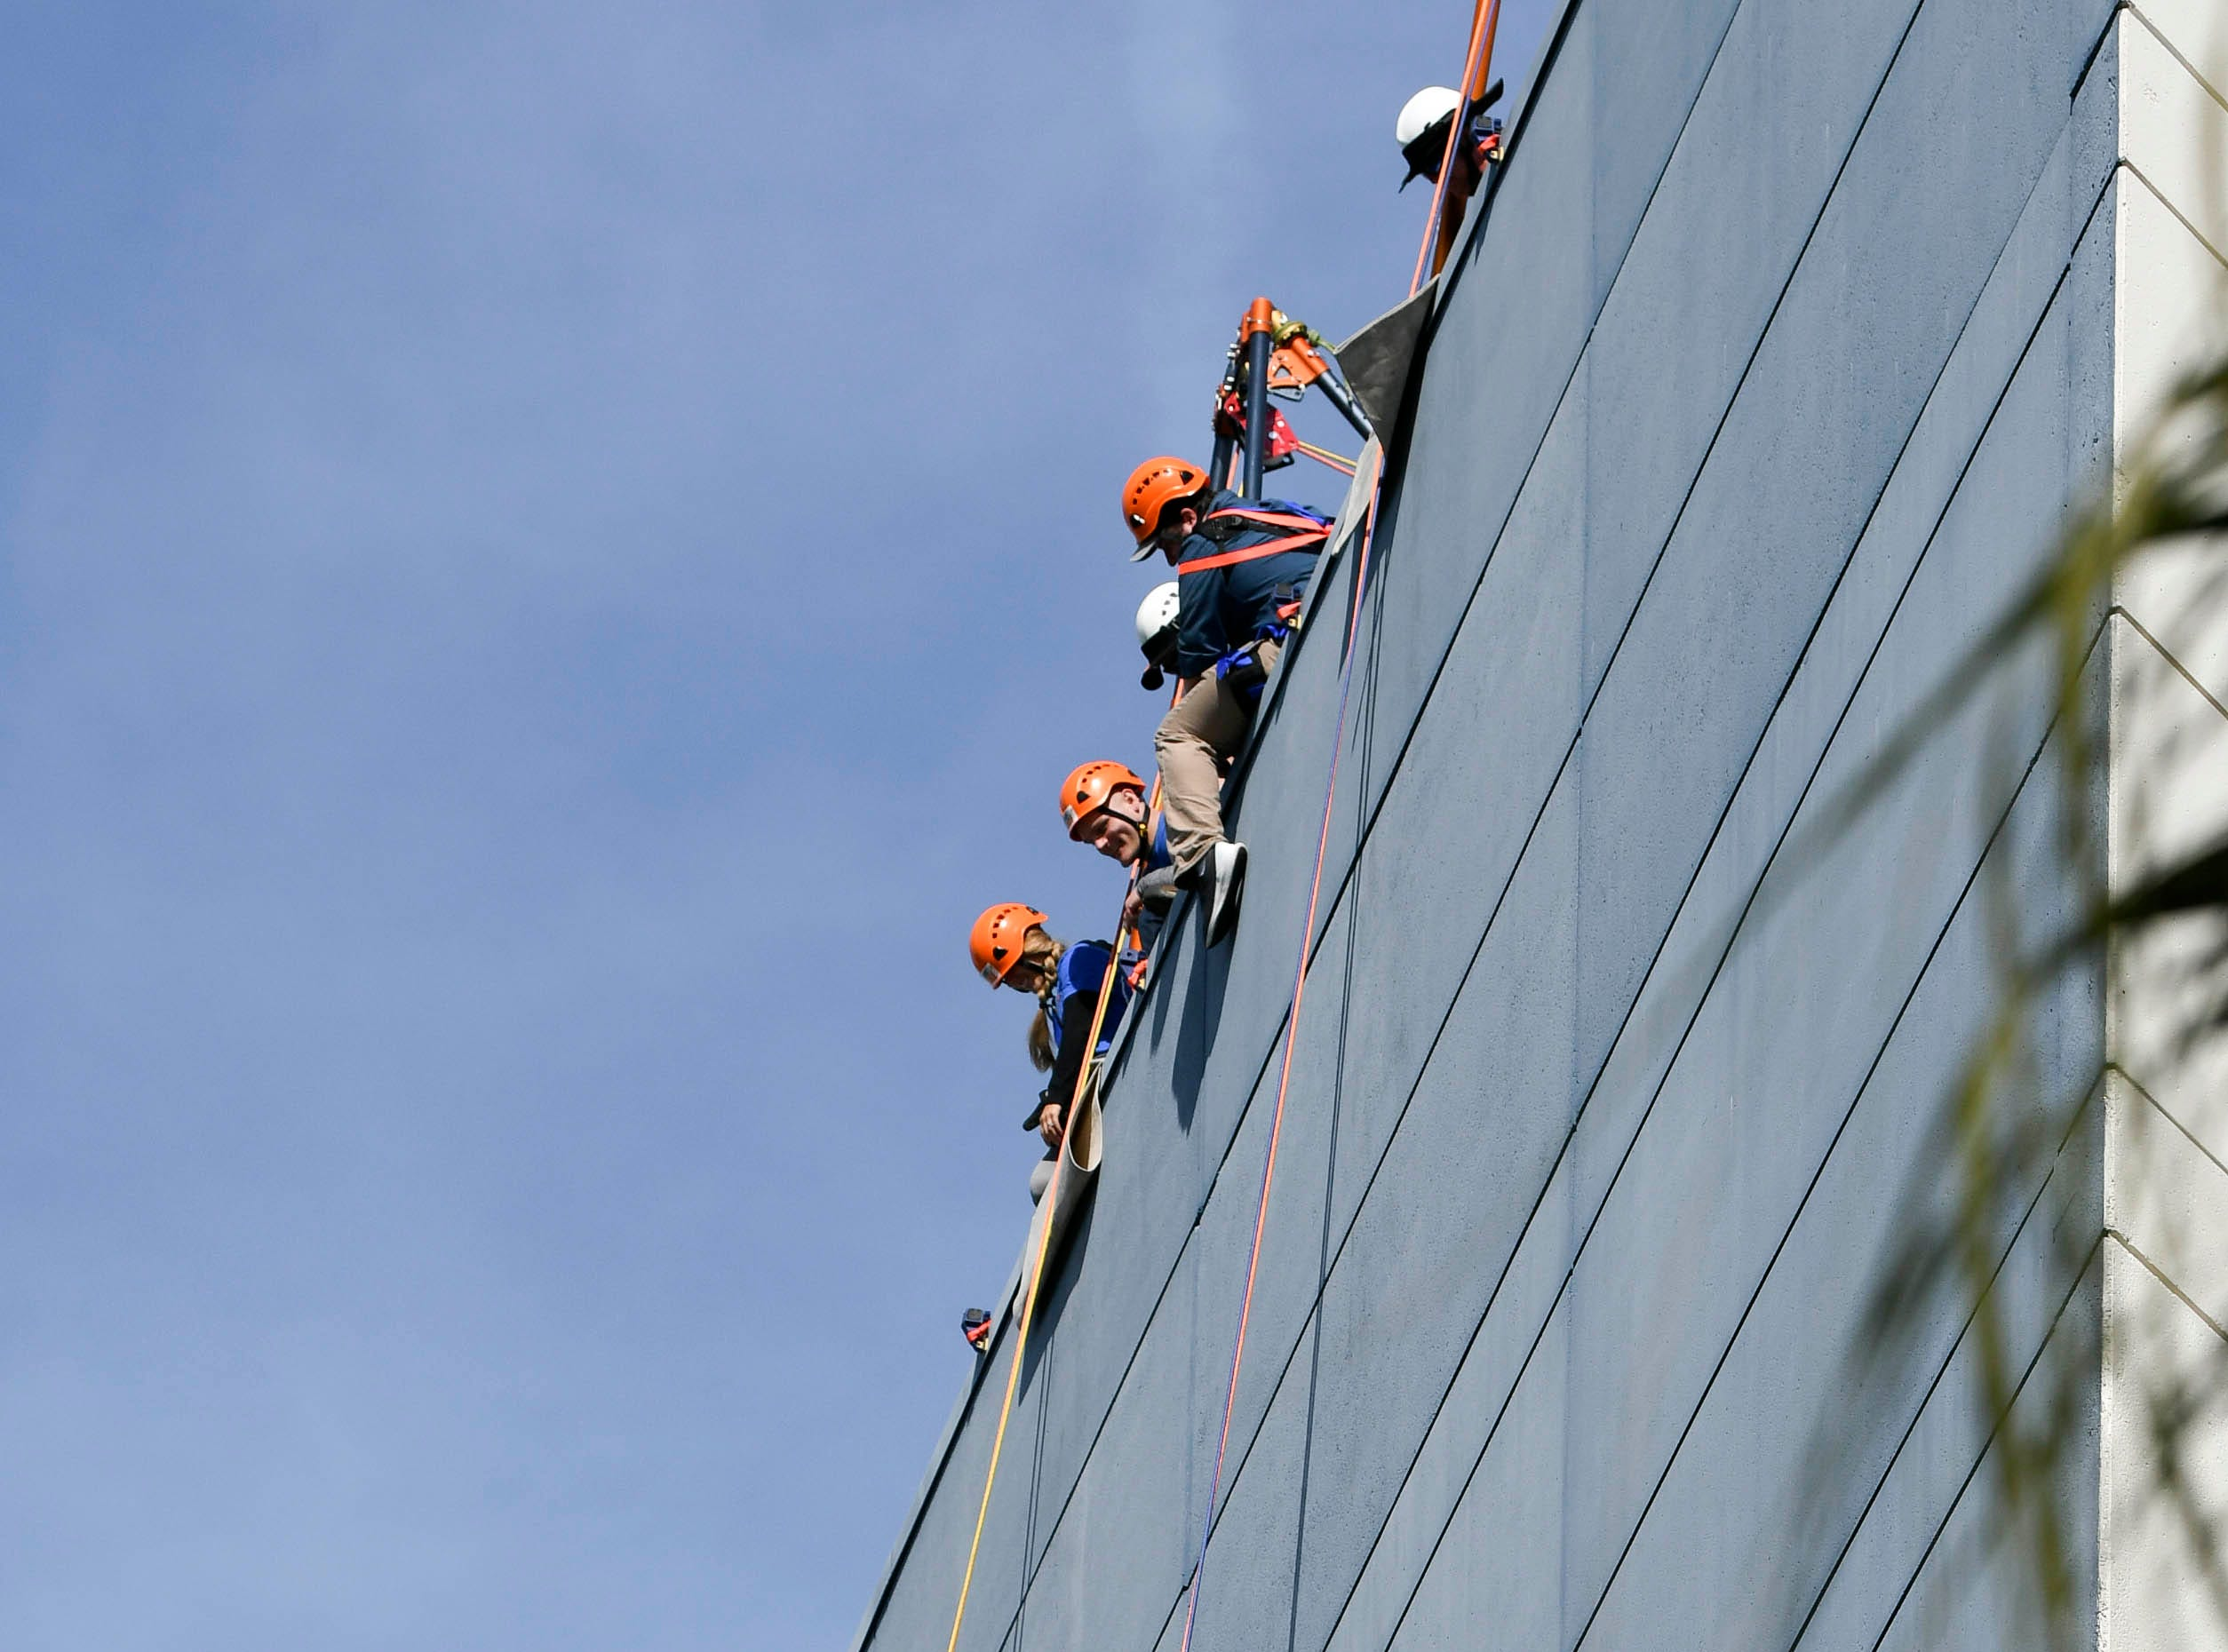 Participants in the Over the Edge fundraiser rappel down the building at the Melbourne Rialto Hilton on Saturday morning. Over the Edge is a fundraiser for Habitat Humanity of Brevard, an organization that helps low-income families buy affordable houses. Teams and individuals raised money for the chance to rappel eight stories down the Hilton.